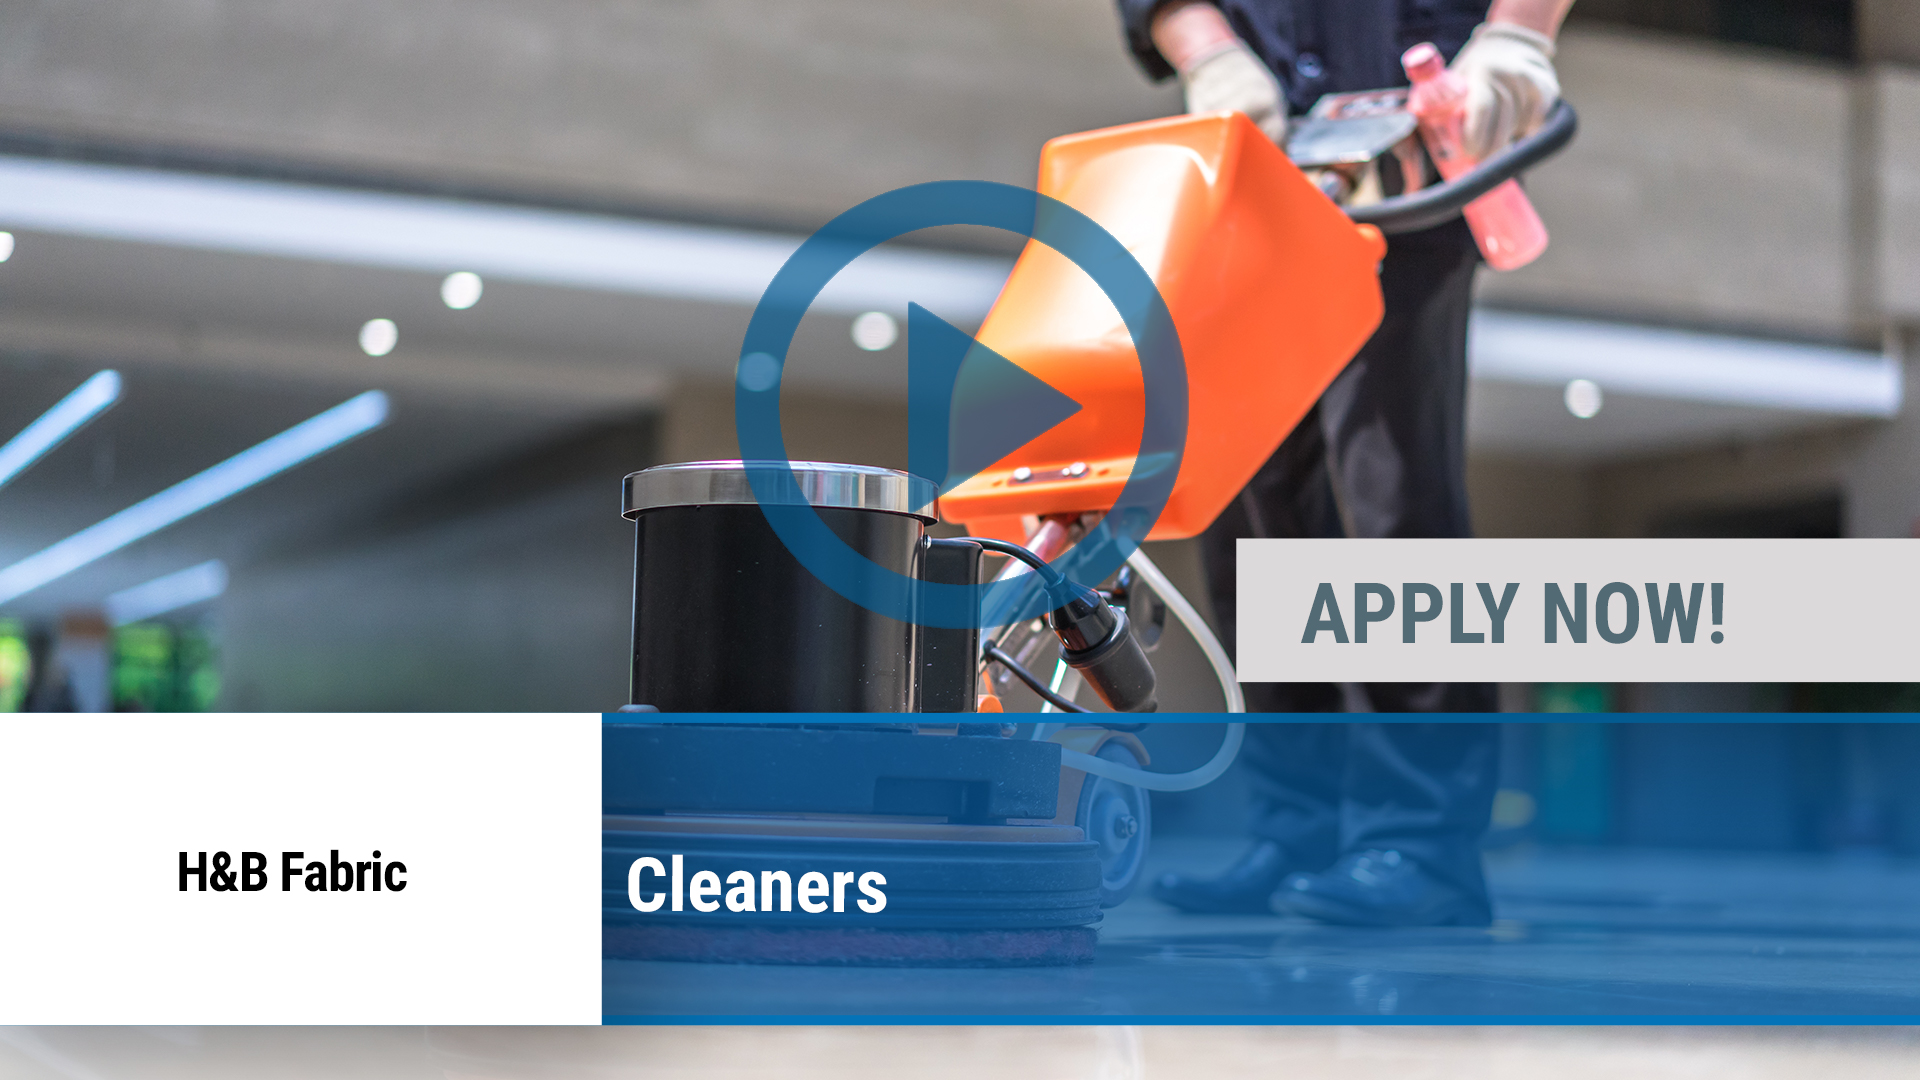 Watch our careers video for available job opening Cleaners in Peoria, IL